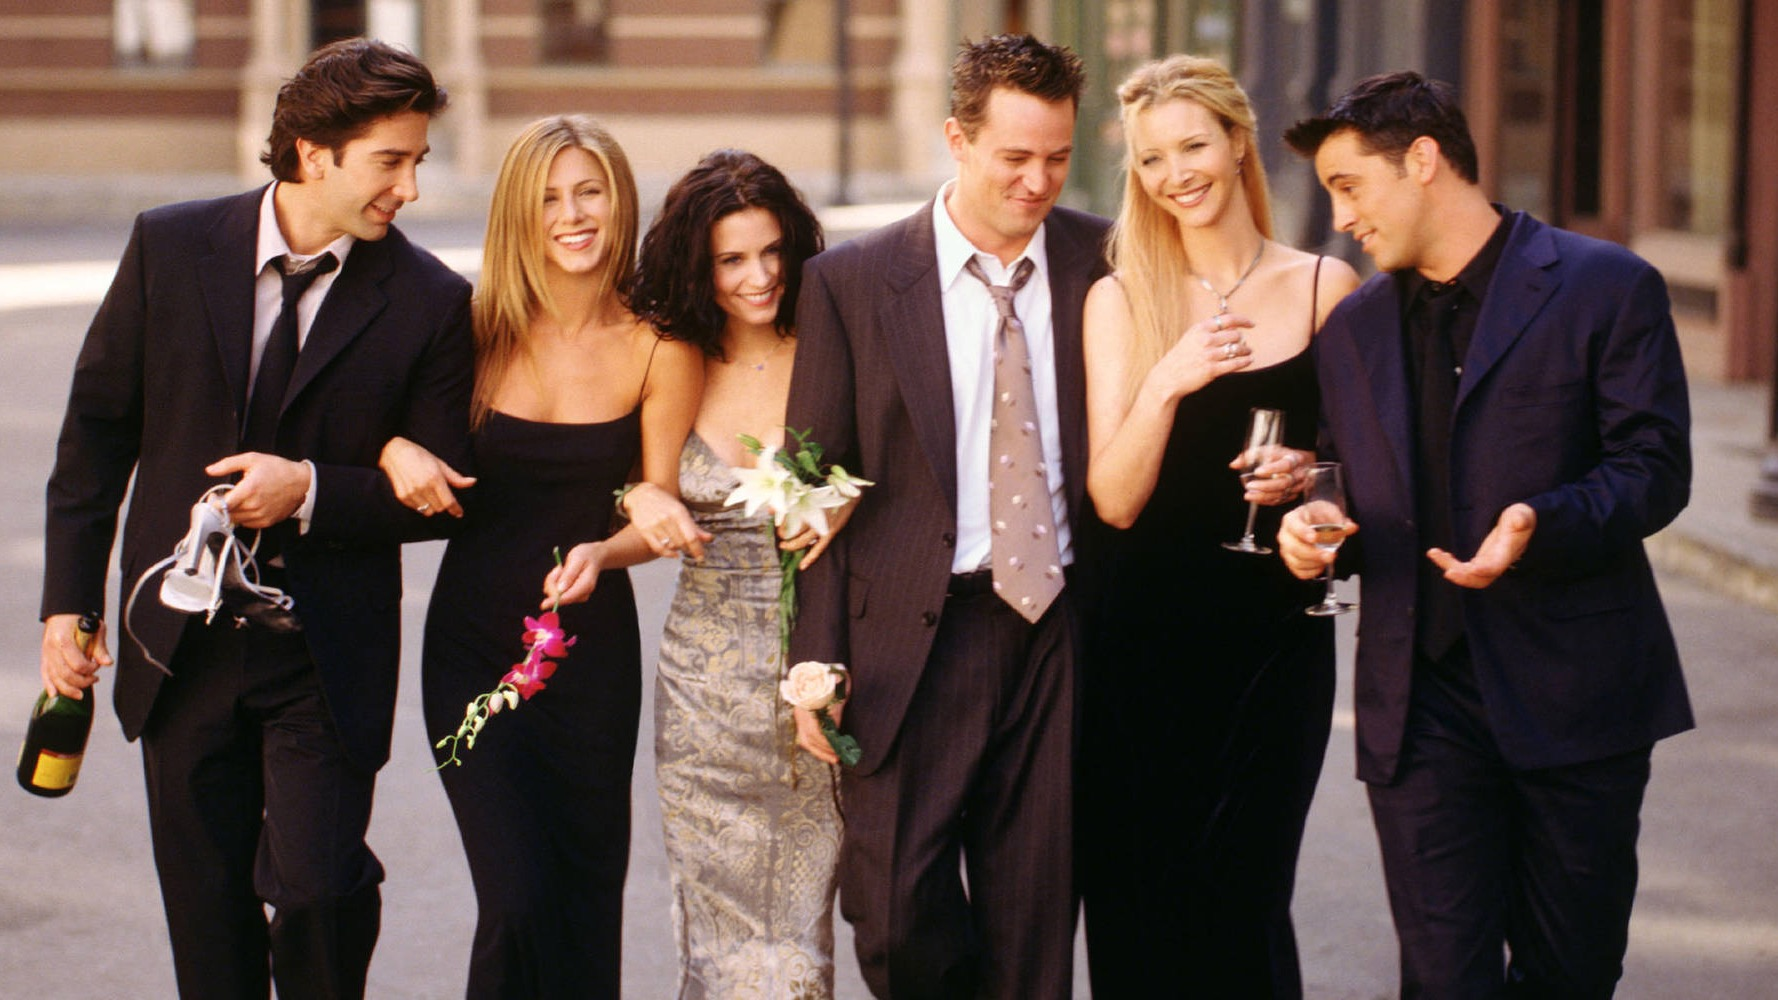 'Friends' cast signs on for 1-hour reunion special at HBO Max: report